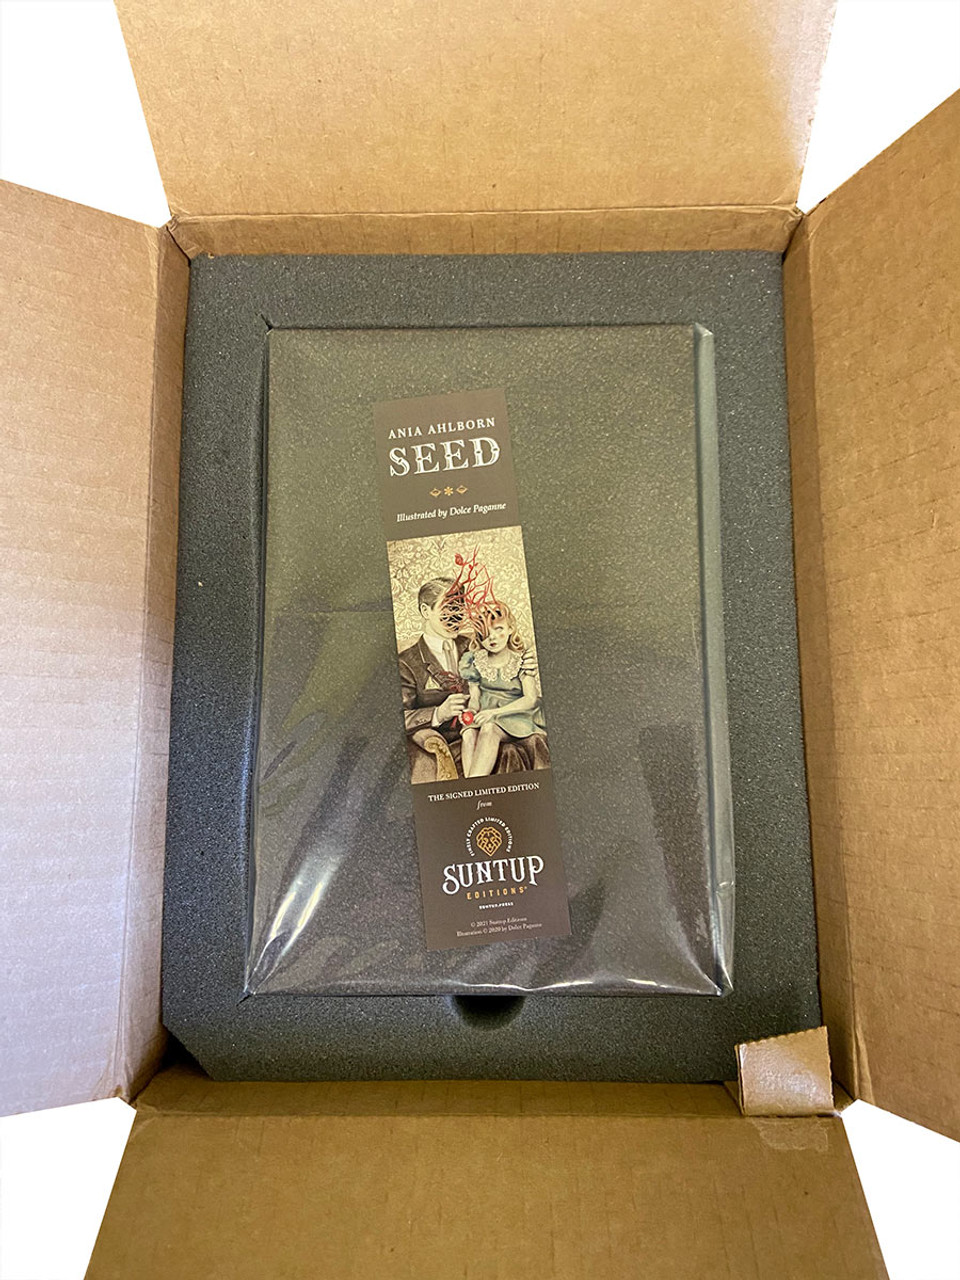 """Ania Ahlborn """"Seed"""" Signed Limited Edition No. 90 of 350, Slipcased [Very Fine]"""